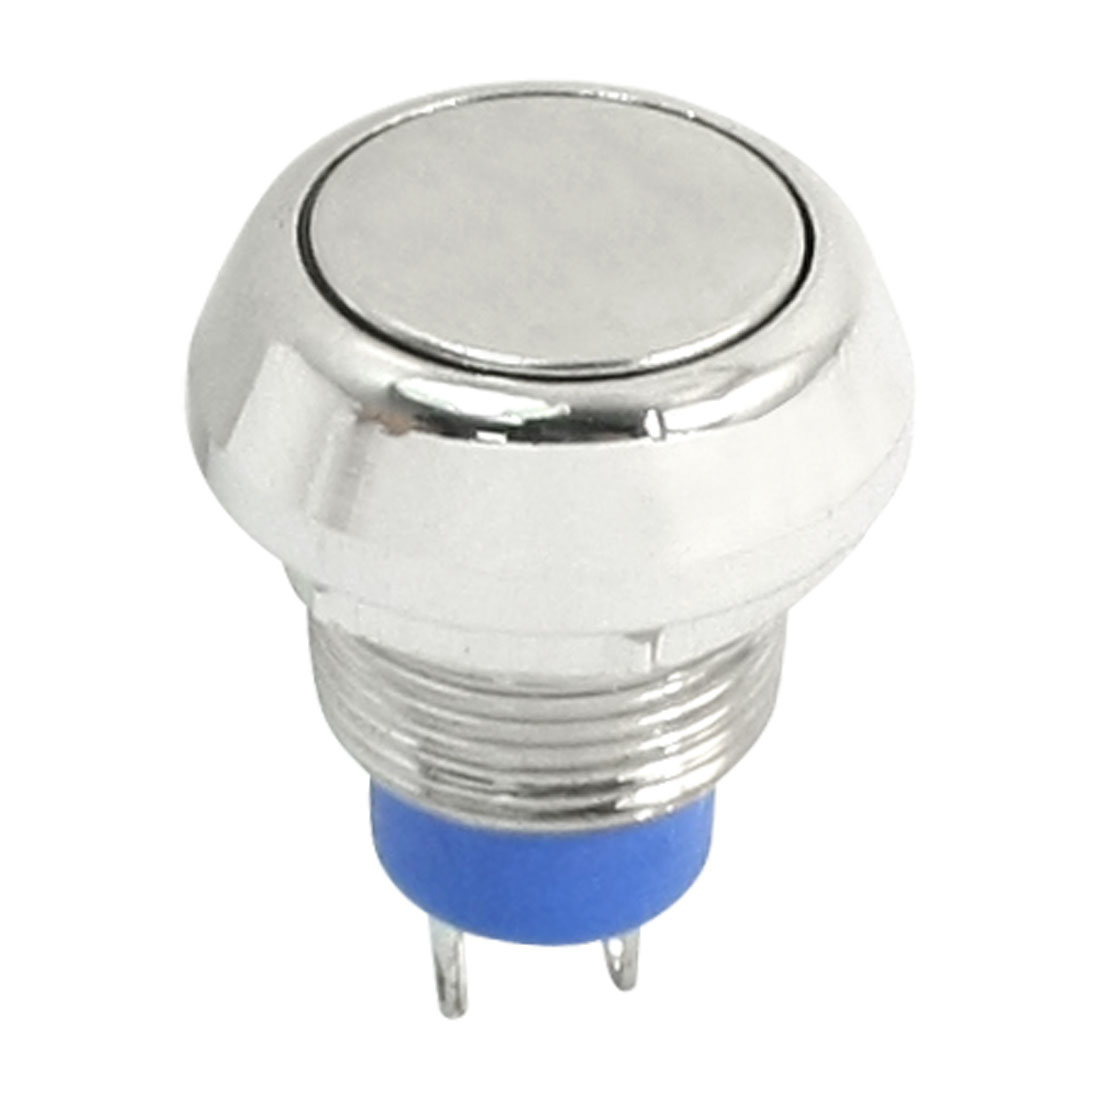 AC 250V 3A 2 Terminal SPST Momentary Stainless Steel Push Button Switch